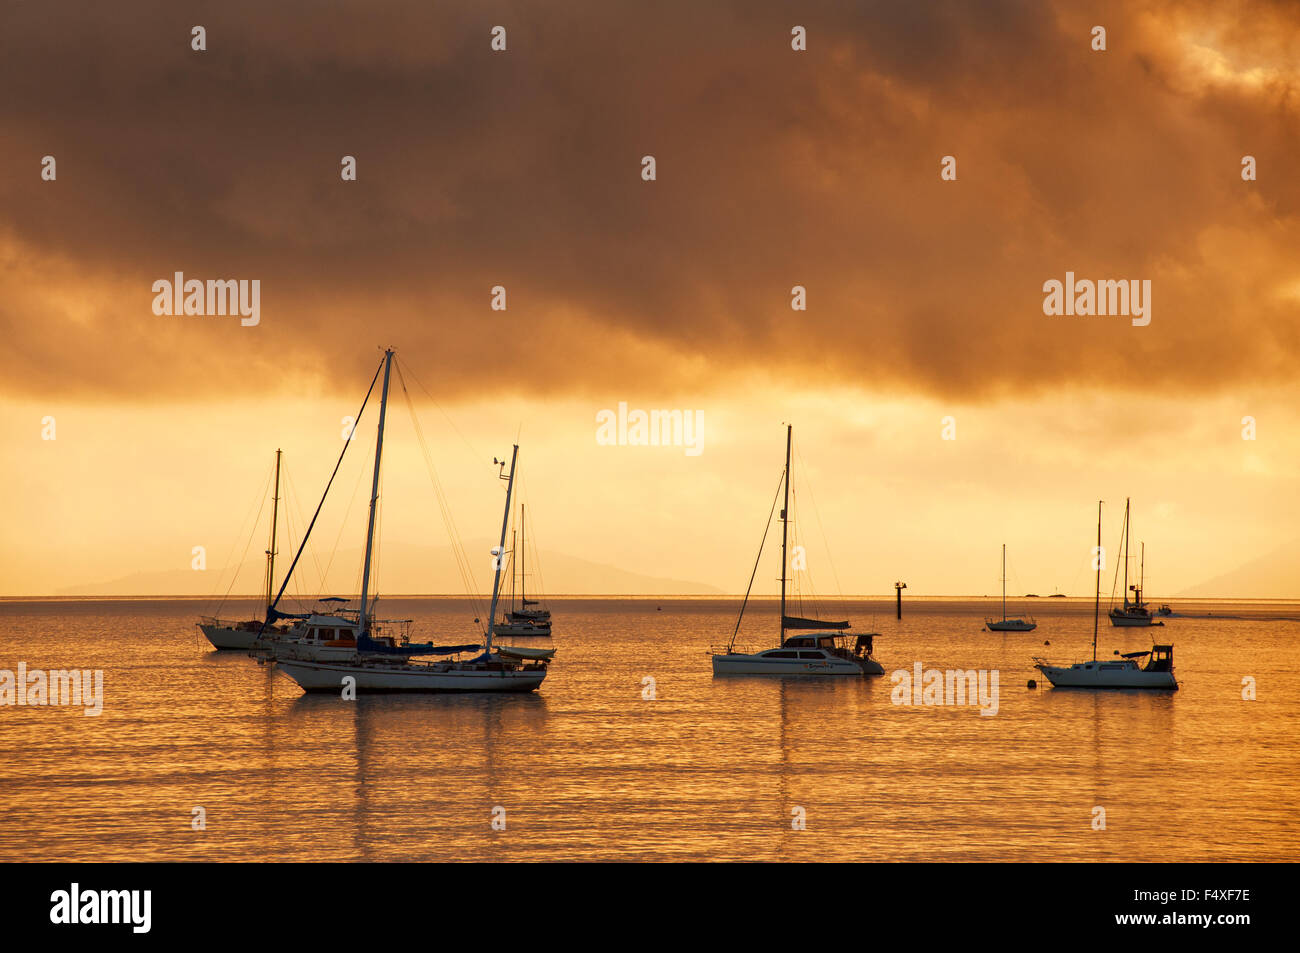 Sail boats at sunrise in Airlie Beach. - Stock Image